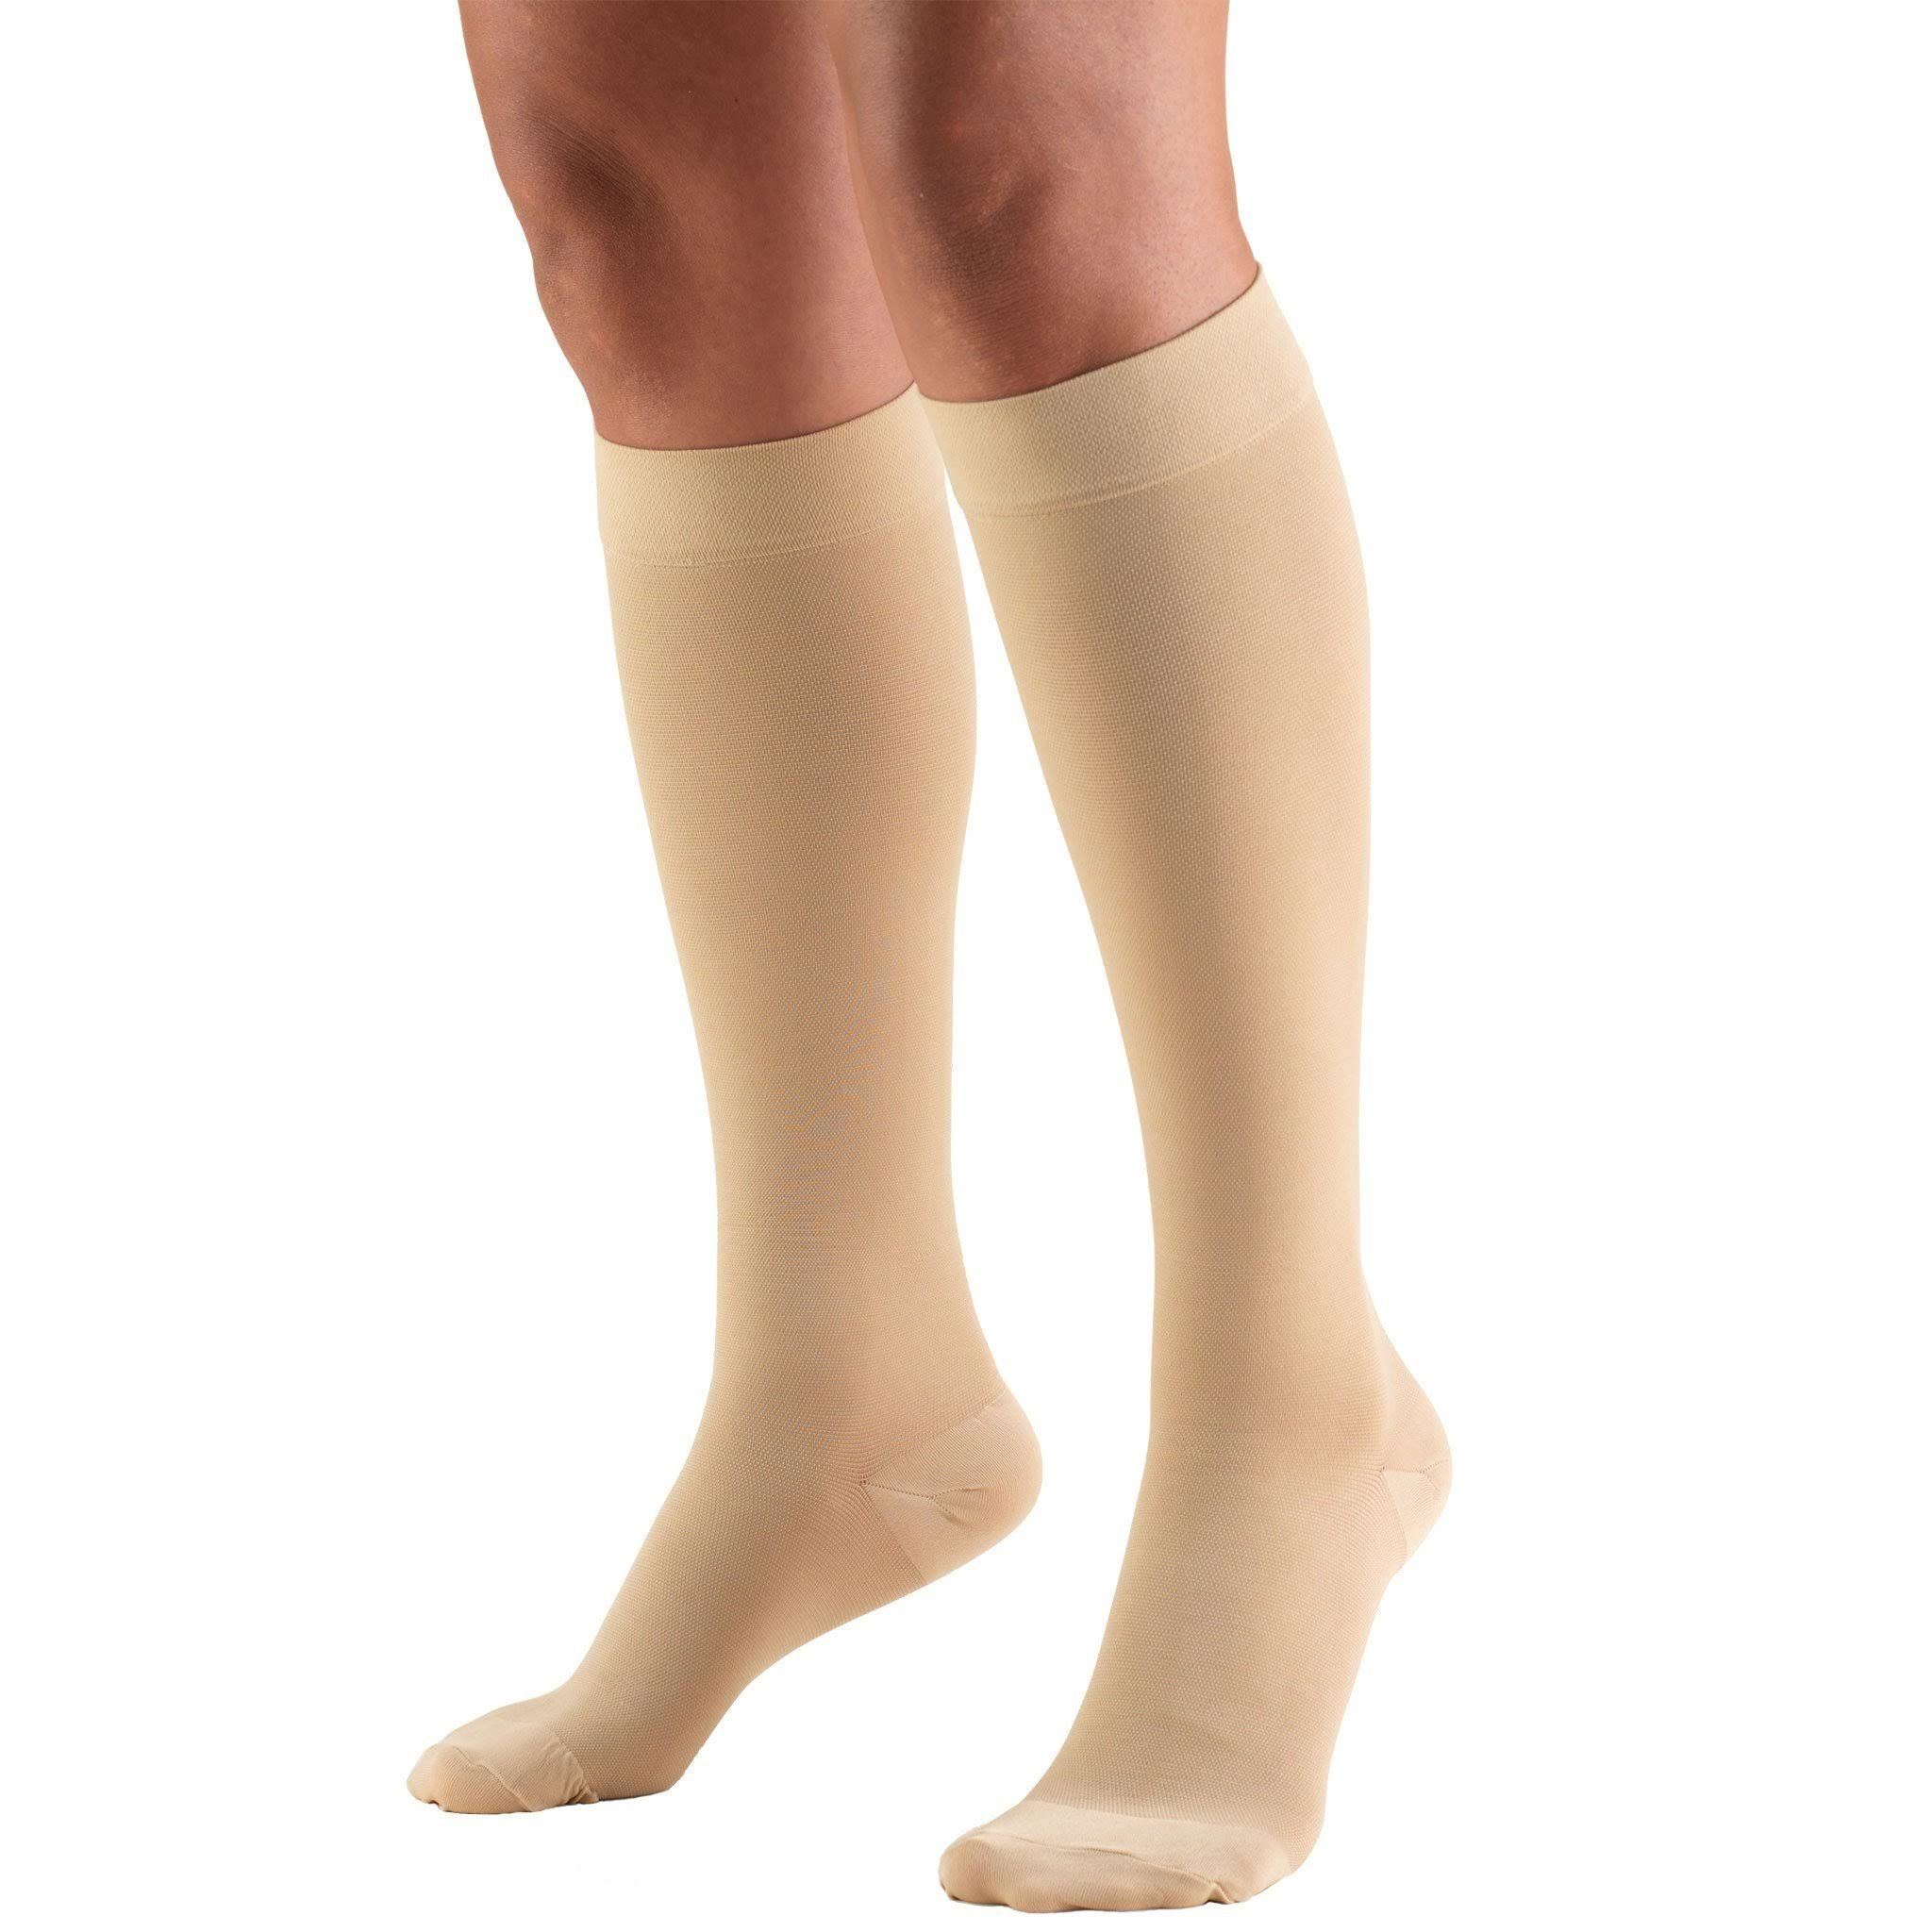 Truform Closed Toe Knee High Compression Stockings - Beige, Small, 20-30 mmHg